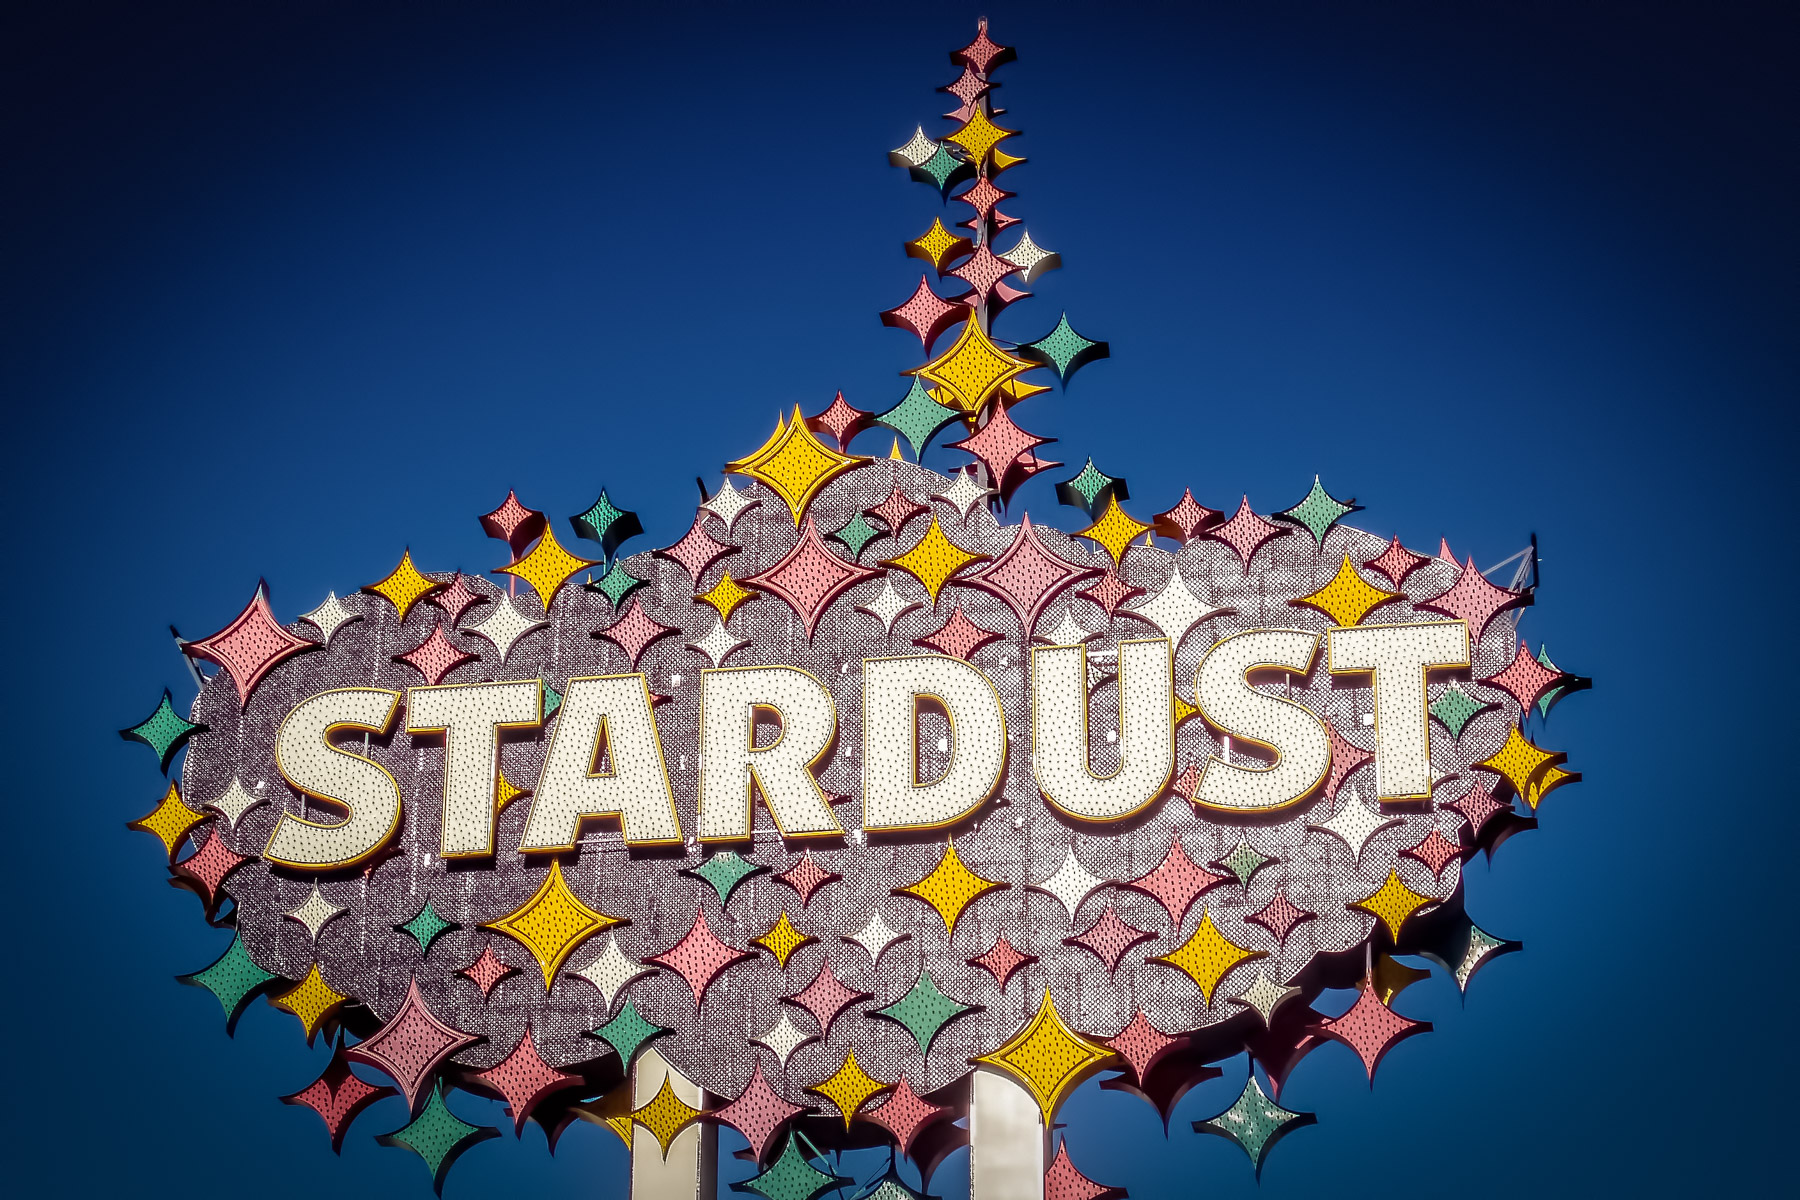 The sign at the Stardust Casino in Las Vegas shortly before it was torn down in 2007.